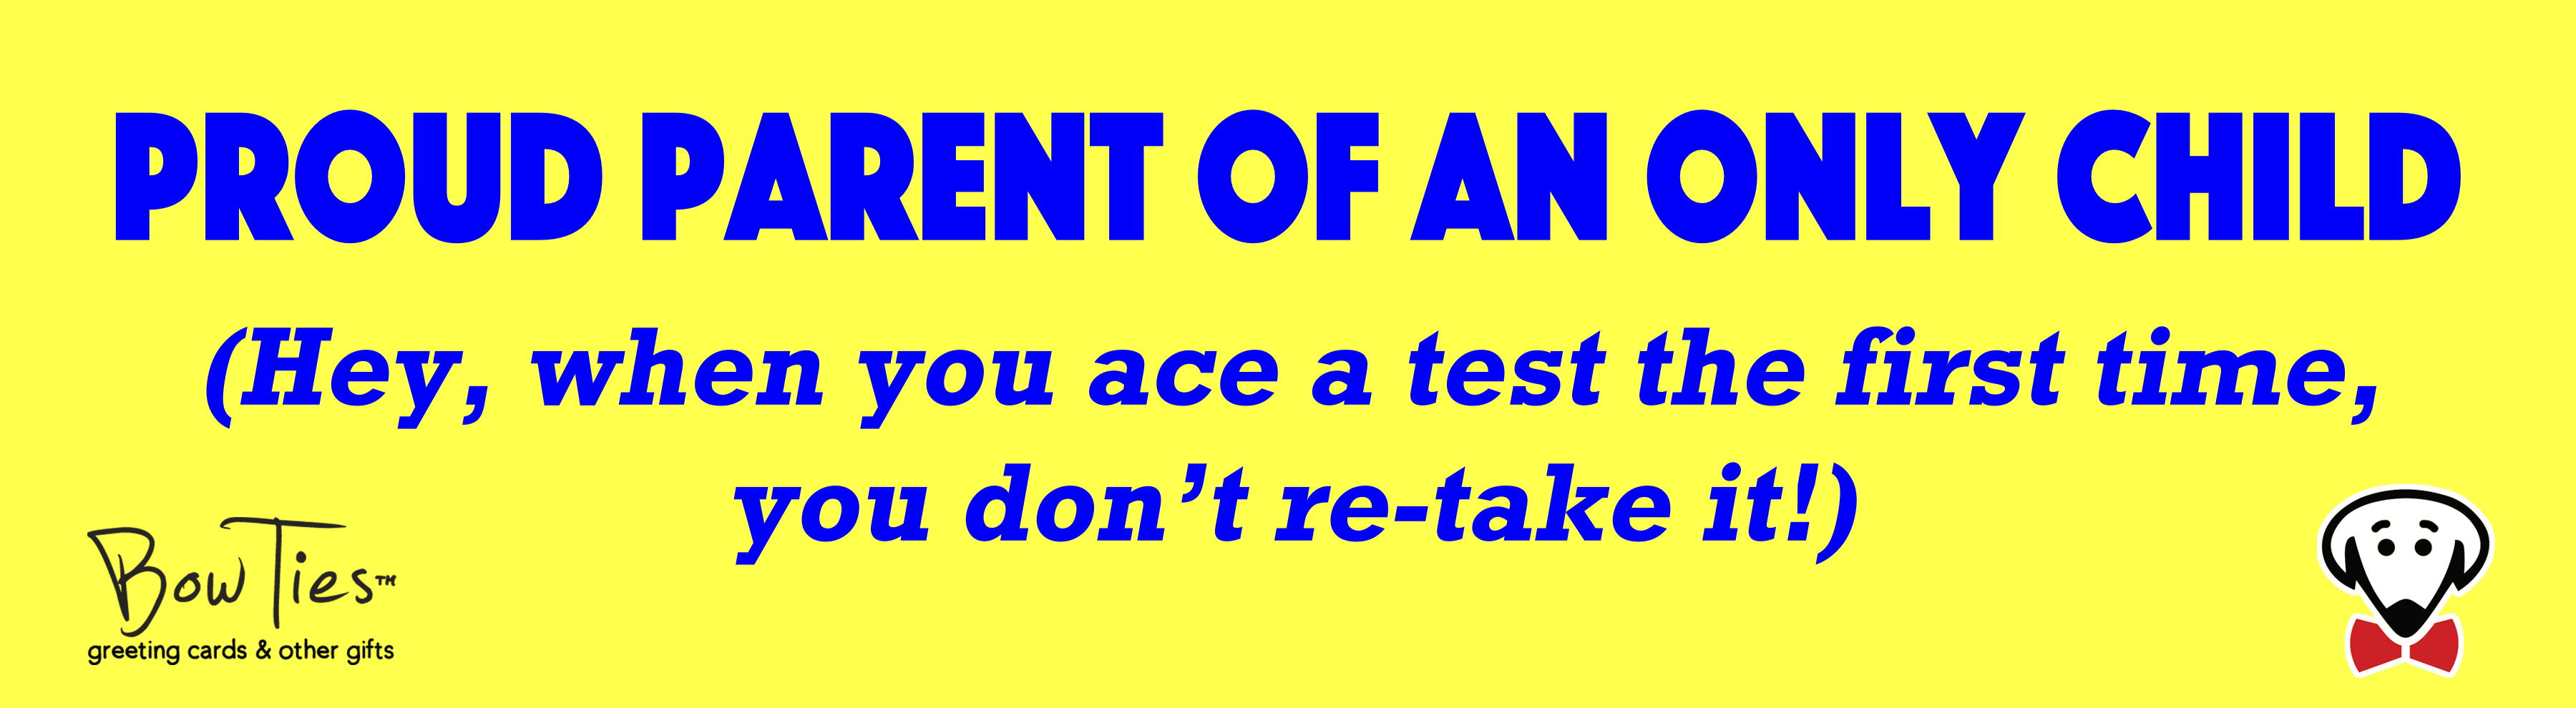 PROUD PARENT OF AN ONLY CHILD (Hey, when you ace a test the first time, you don't re-take it) – sticker